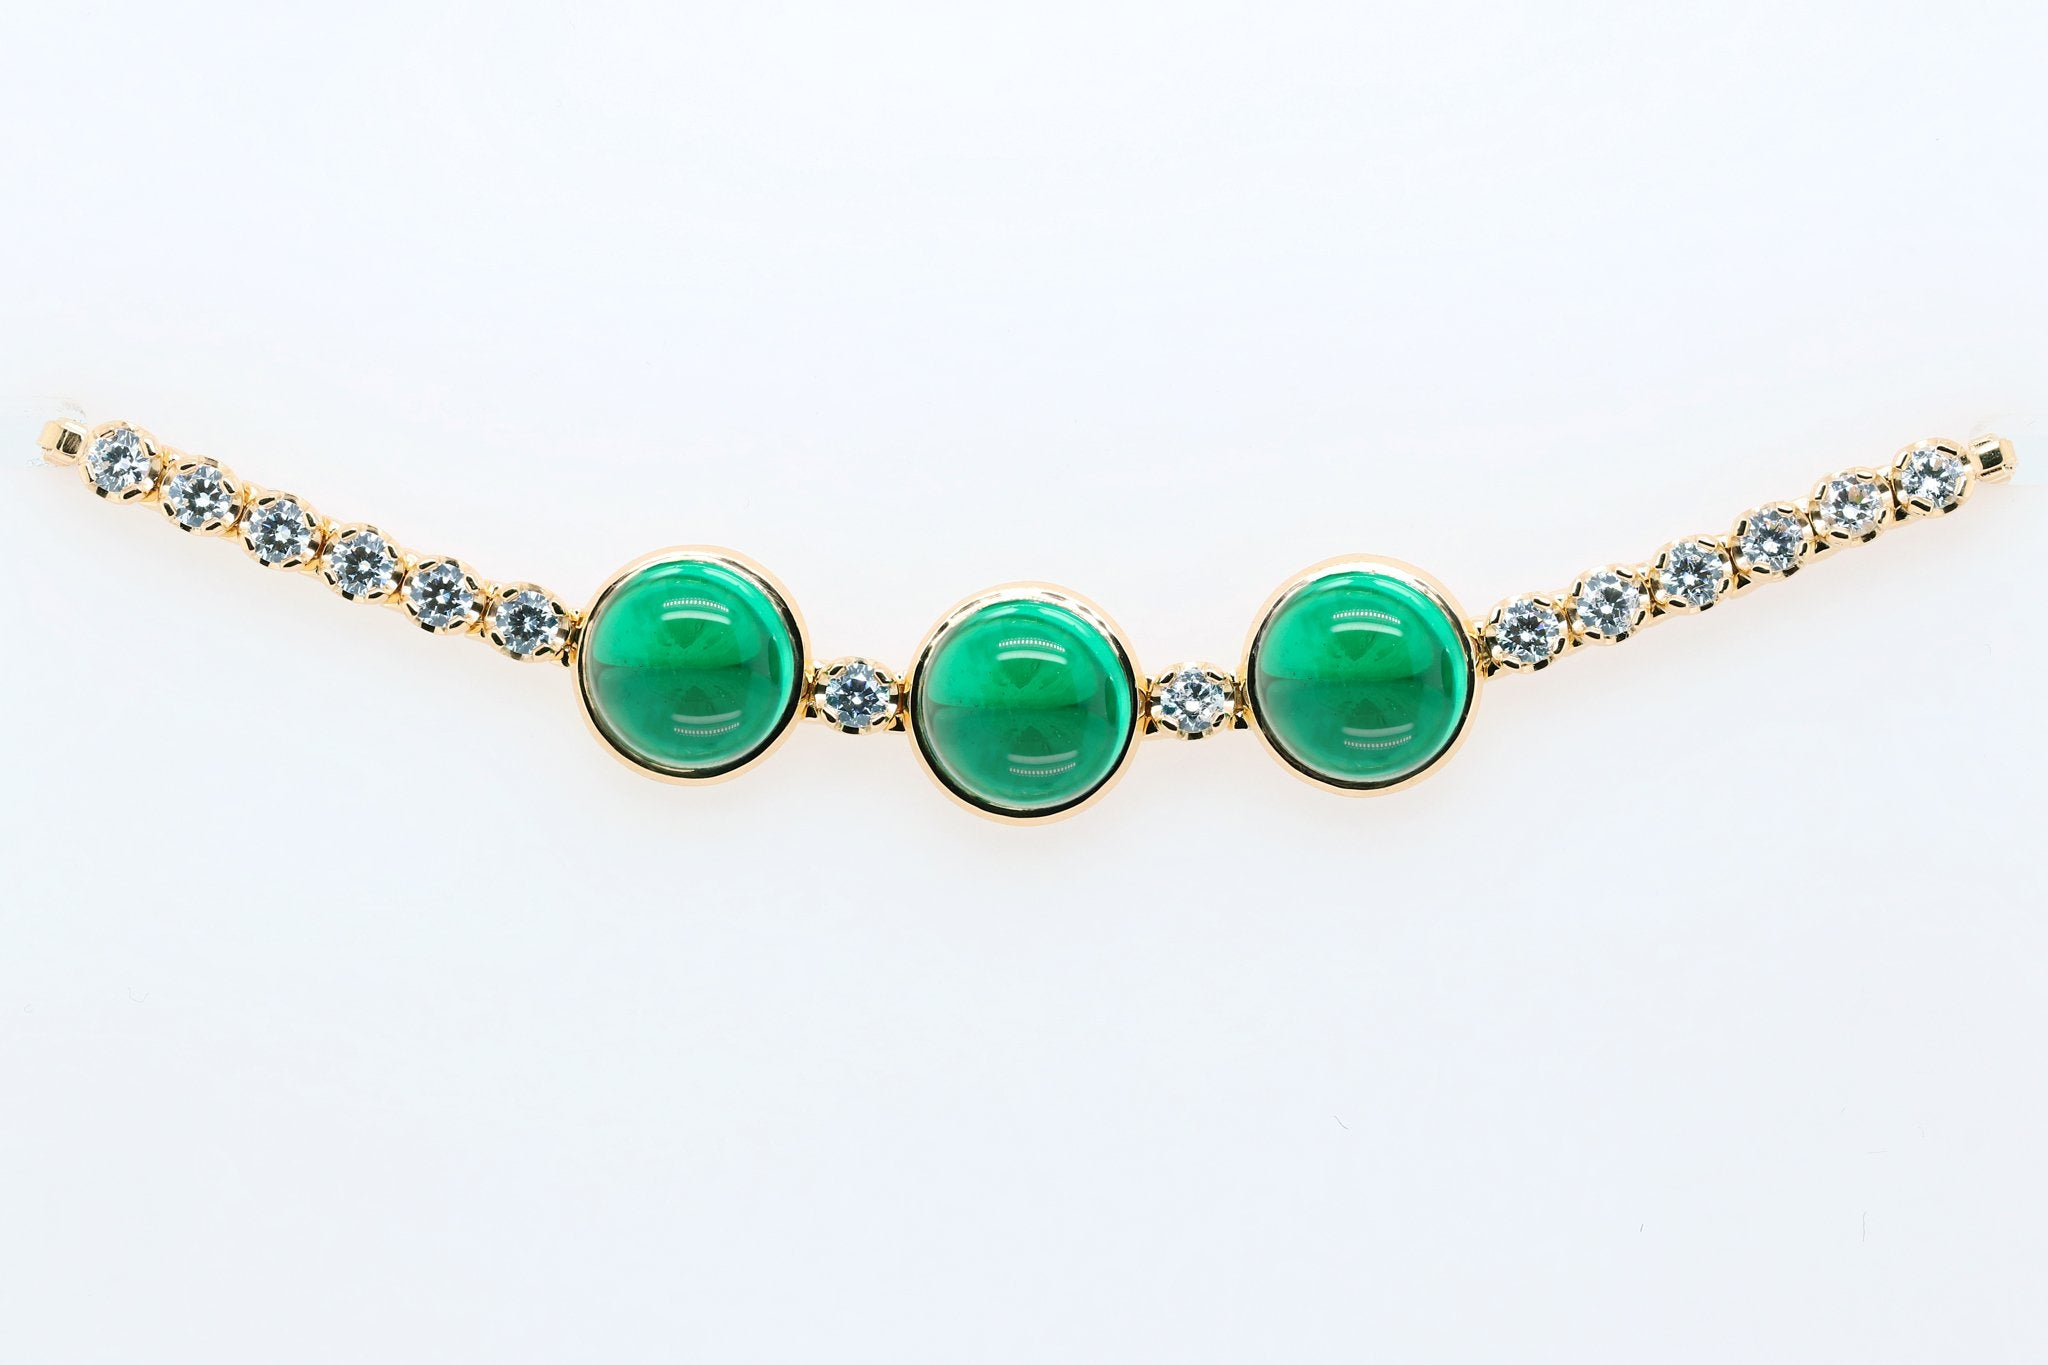 Triple emerald green tropical bracelet